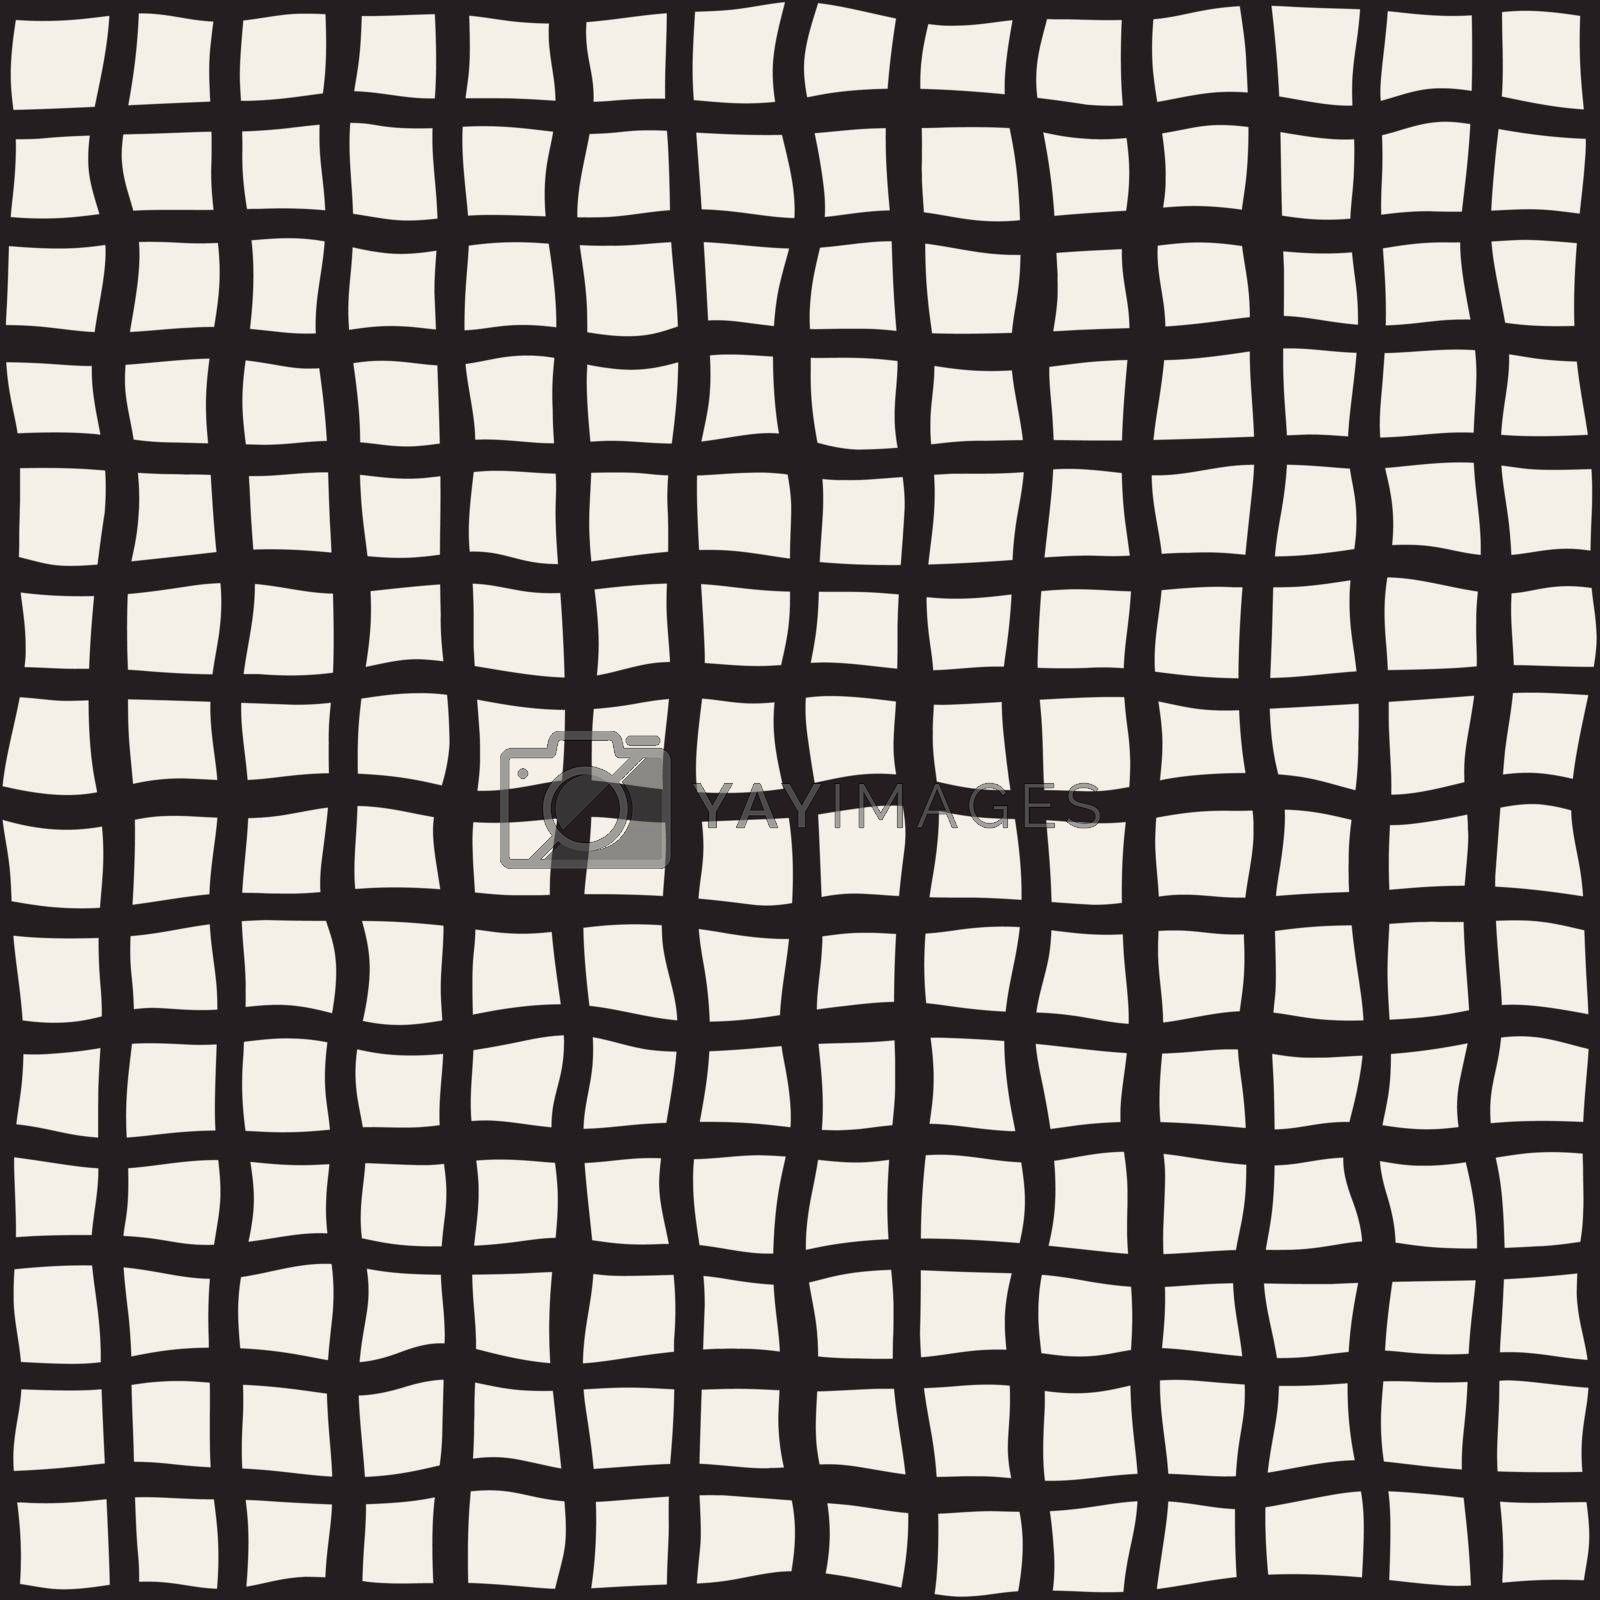 Vector Seamless Hand Drawn Black and White Grid Pattern. Abstract Freehand Background Design